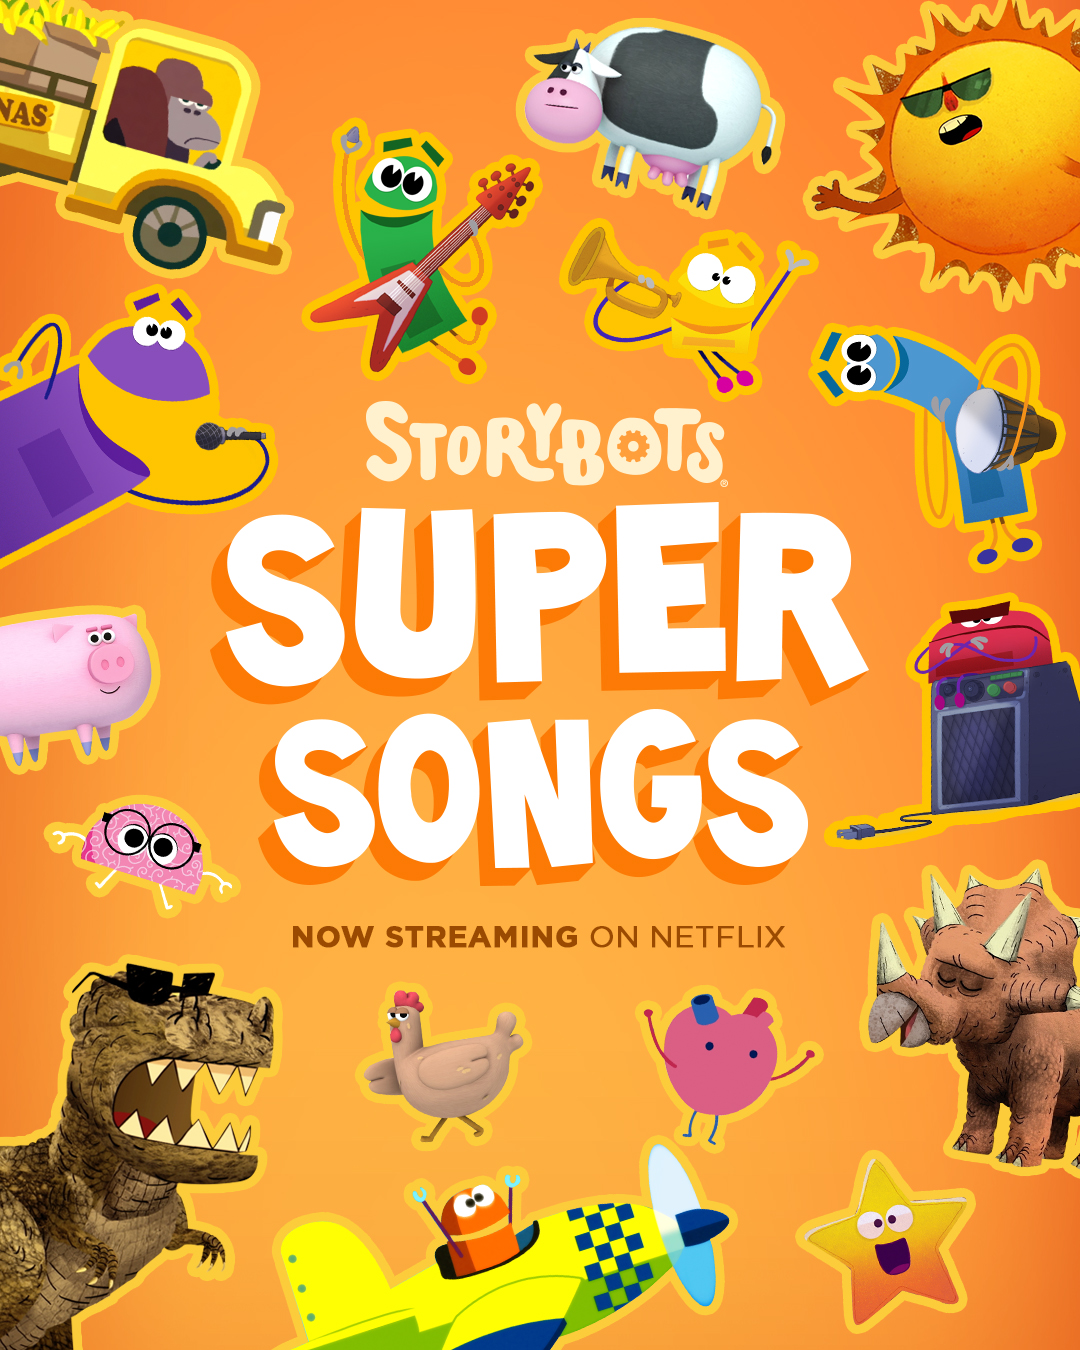 STORYBOTS SUPER SONGS - Sing and dance along with your favorite StoryBots characters as they learn about topics including outer space, dinosaurs, shapes, emotions, colors and more. Real kids join Team 341-B as they explore complex lessons through catchy and clever music videos.